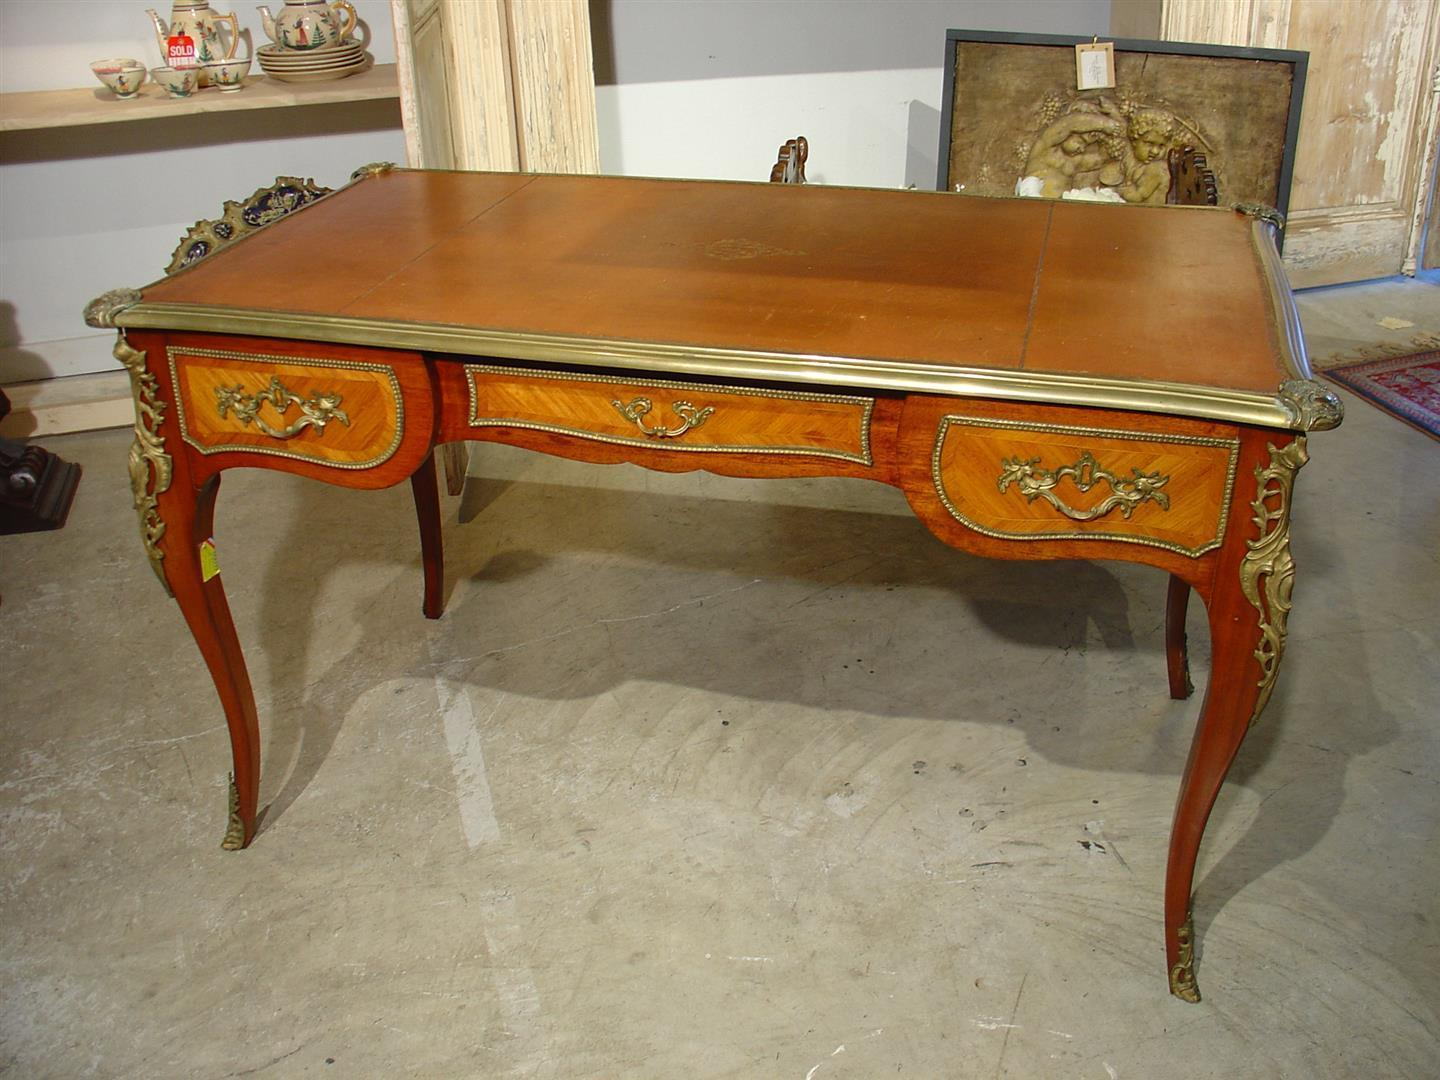 Antique louis xv style bureau plat from lelouvrefrenchantiques on ruby lane - Bureau style vintage ...